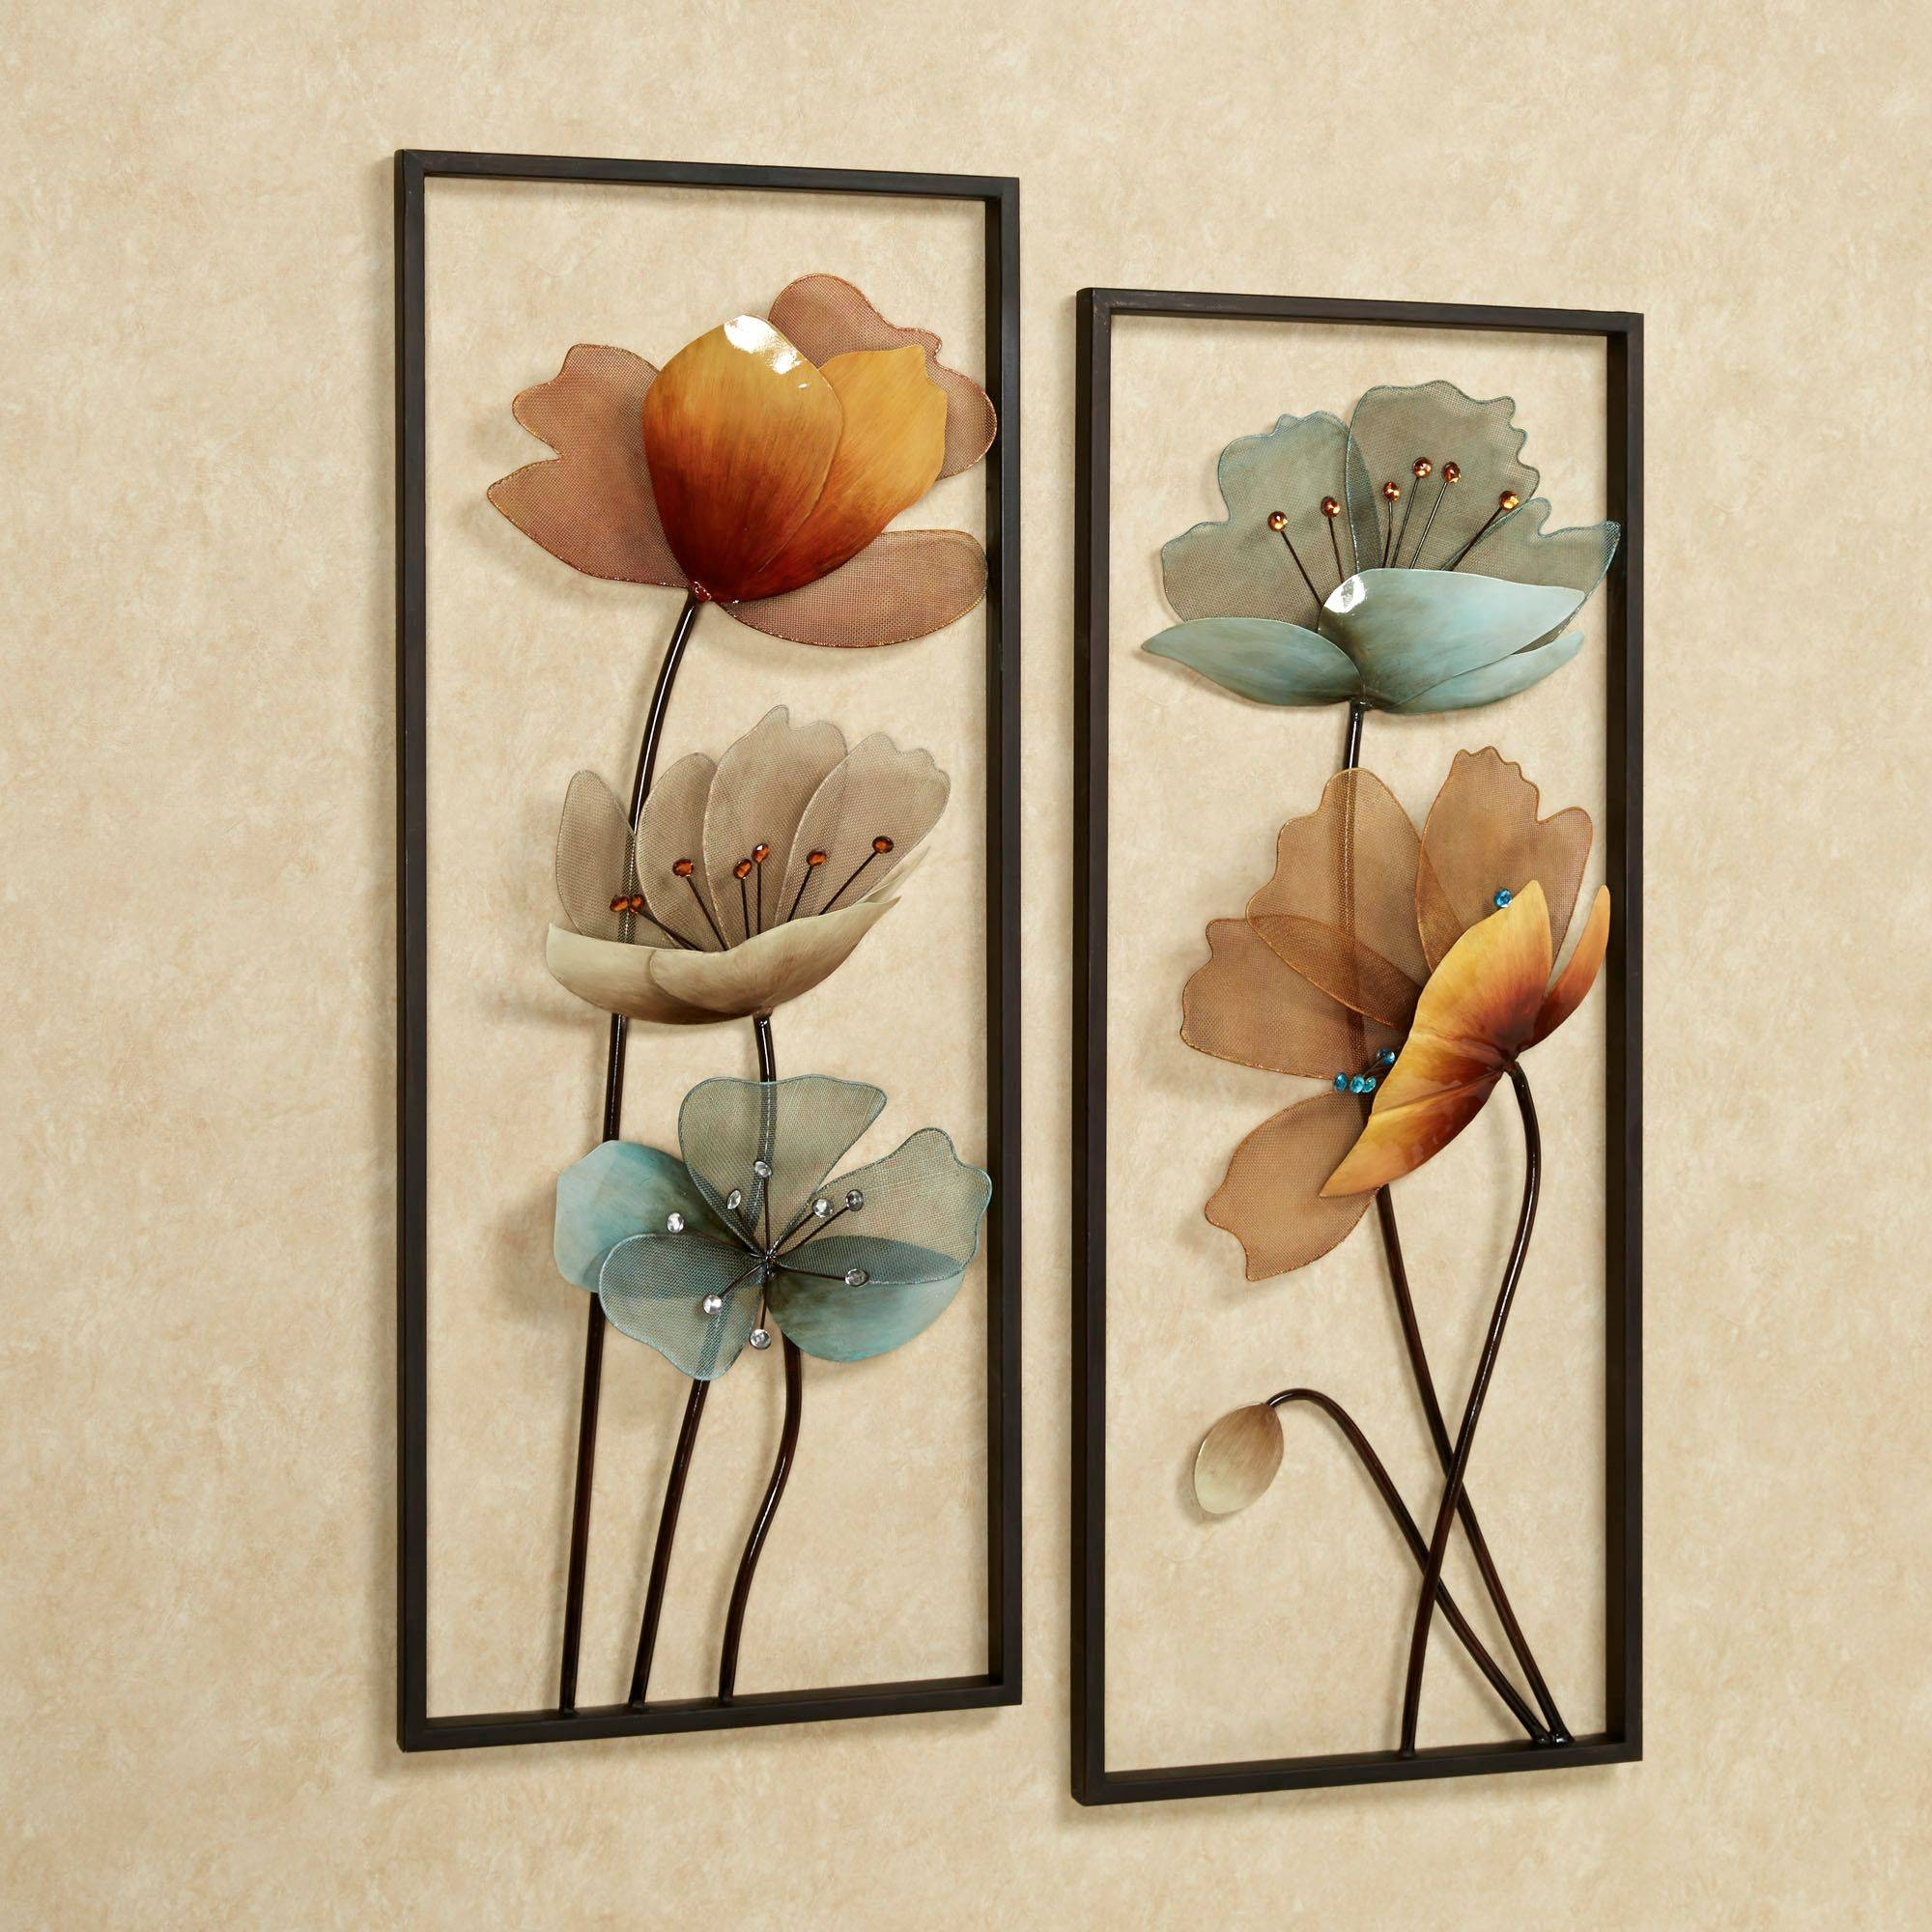 Abstract Metal Wall Art Cheap : Unique Material Decorative Metal Intended For 2018 Decorative Metal Wall Art Panels (Gallery 2 of 20)